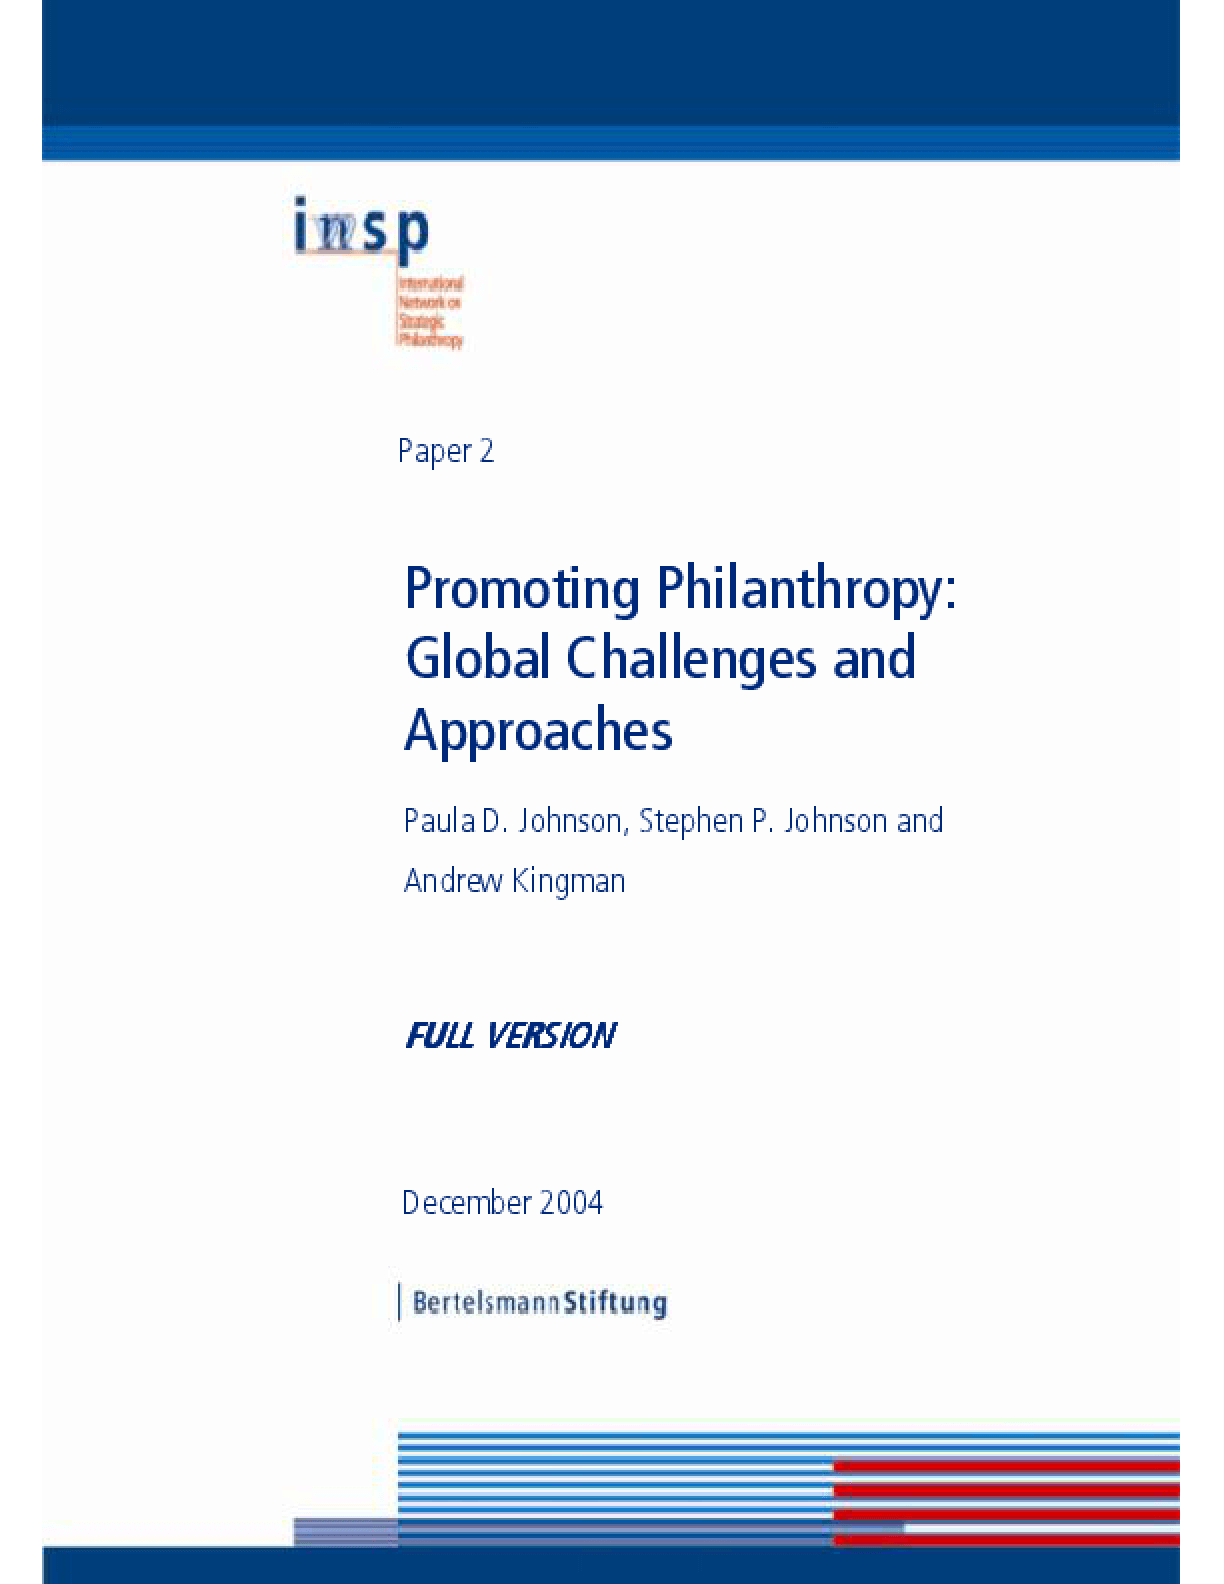 Promoting Philanthropy: Global Challenges and Approaches